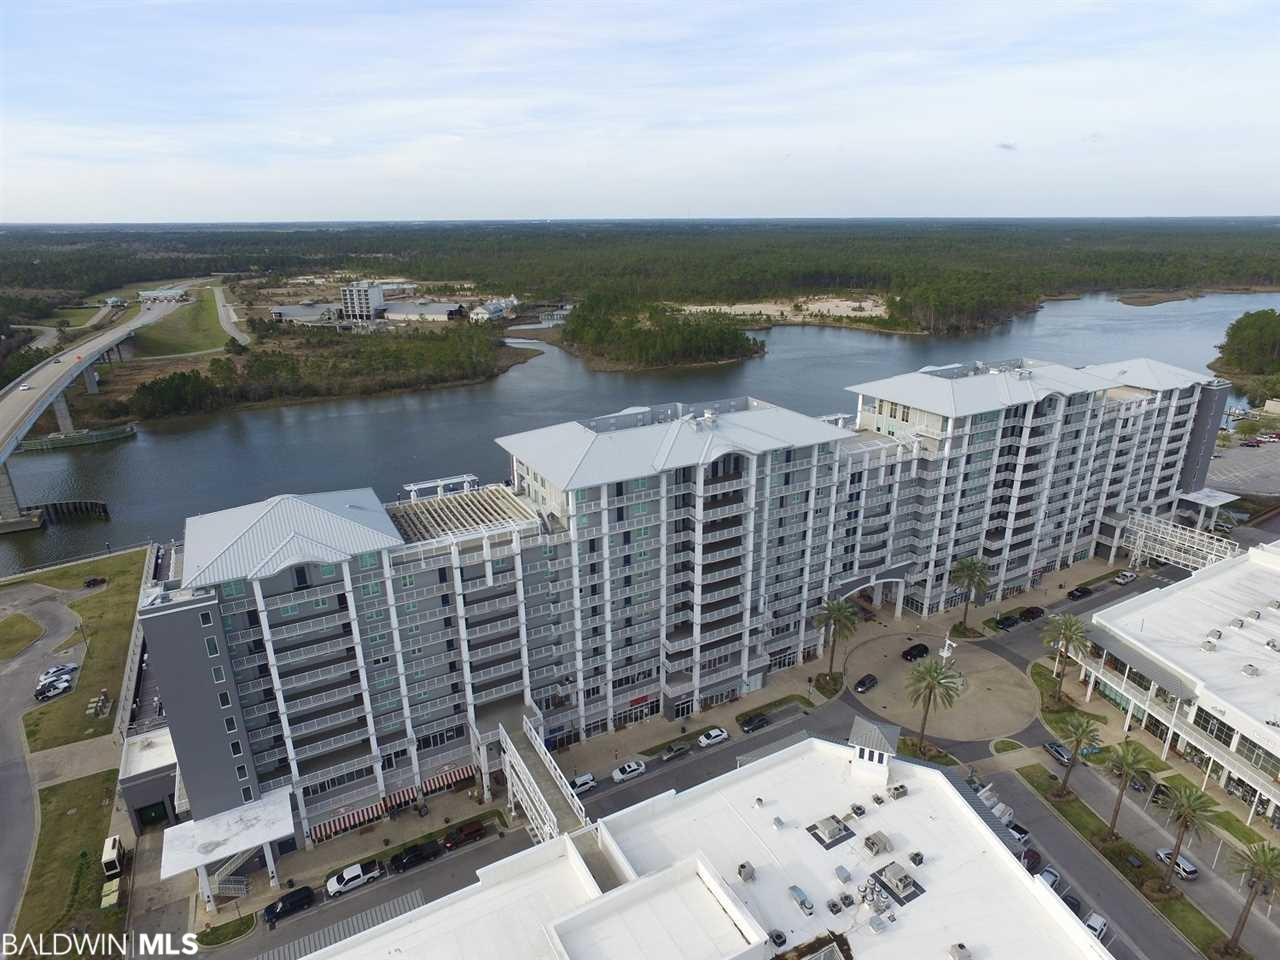 1 bed, 1 bath unit w/ hall bunks. Granite counters in kitchen and bath, SS appliances including a gas range. Bathroom features a jetted tub/shower combo. Gas grill on balcony w/ great marina views. Assigned parking on 3rd level of parking garage and fabulous amenities!